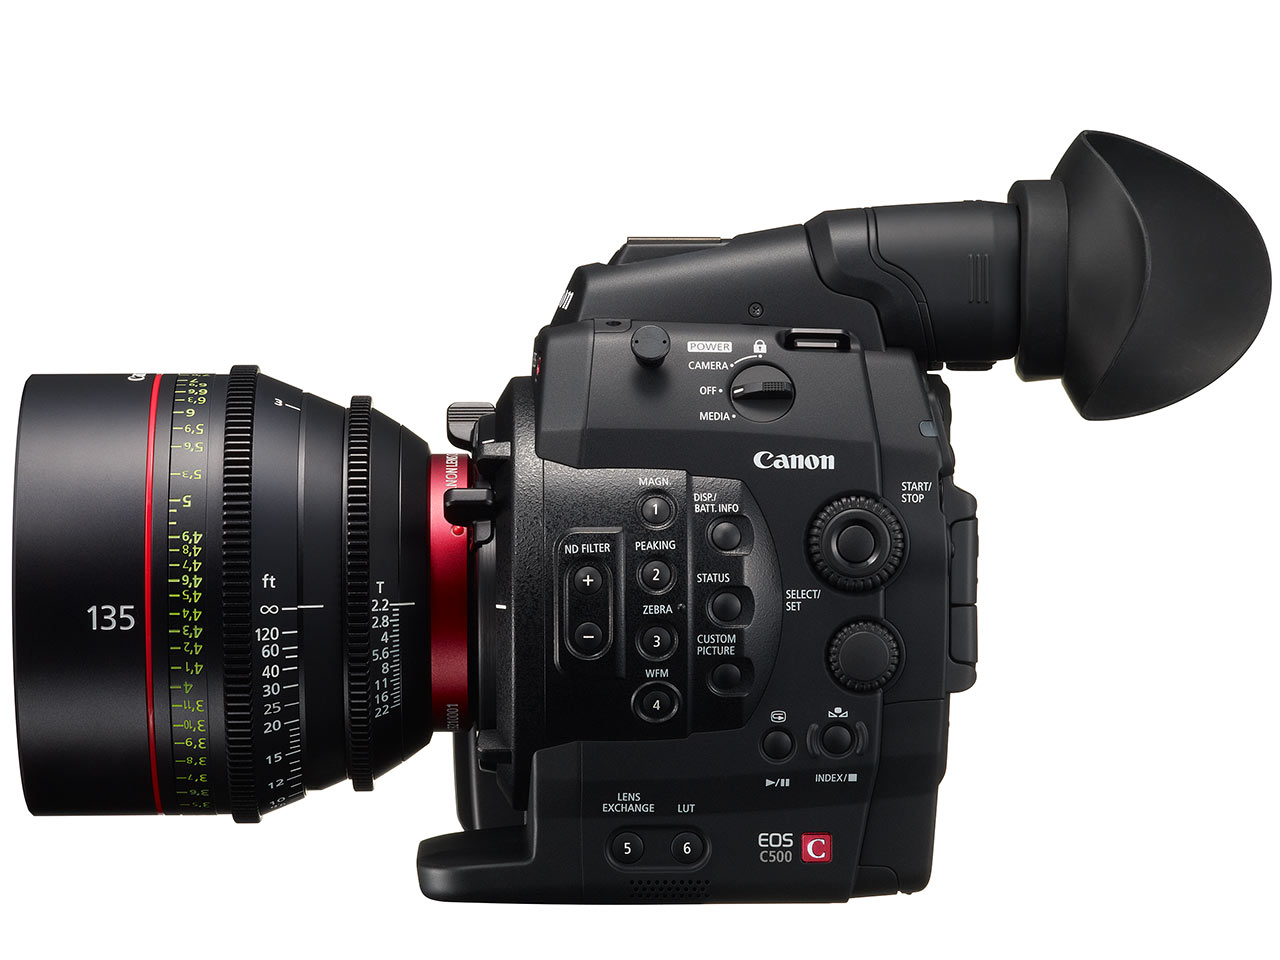 Download Driver: Canon EOS C500 Camera